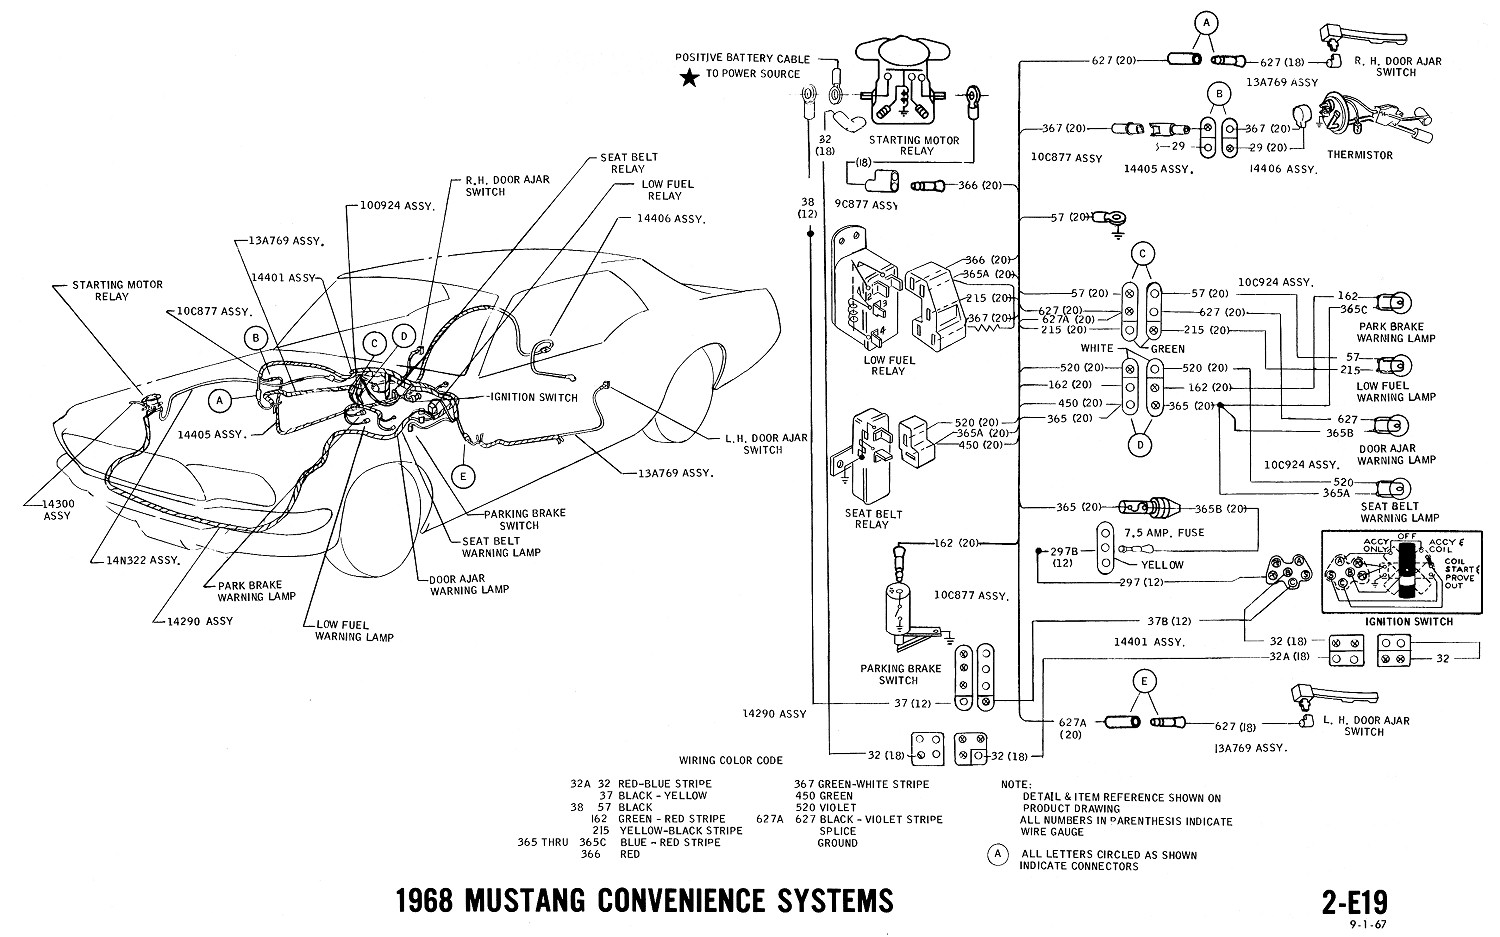 1968 mustang wiring diagram convenience systems?resized665%2C4156ssld1 ford territory wiring diagram efcaviation com ford territory towbar wiring diagram at aneh.co